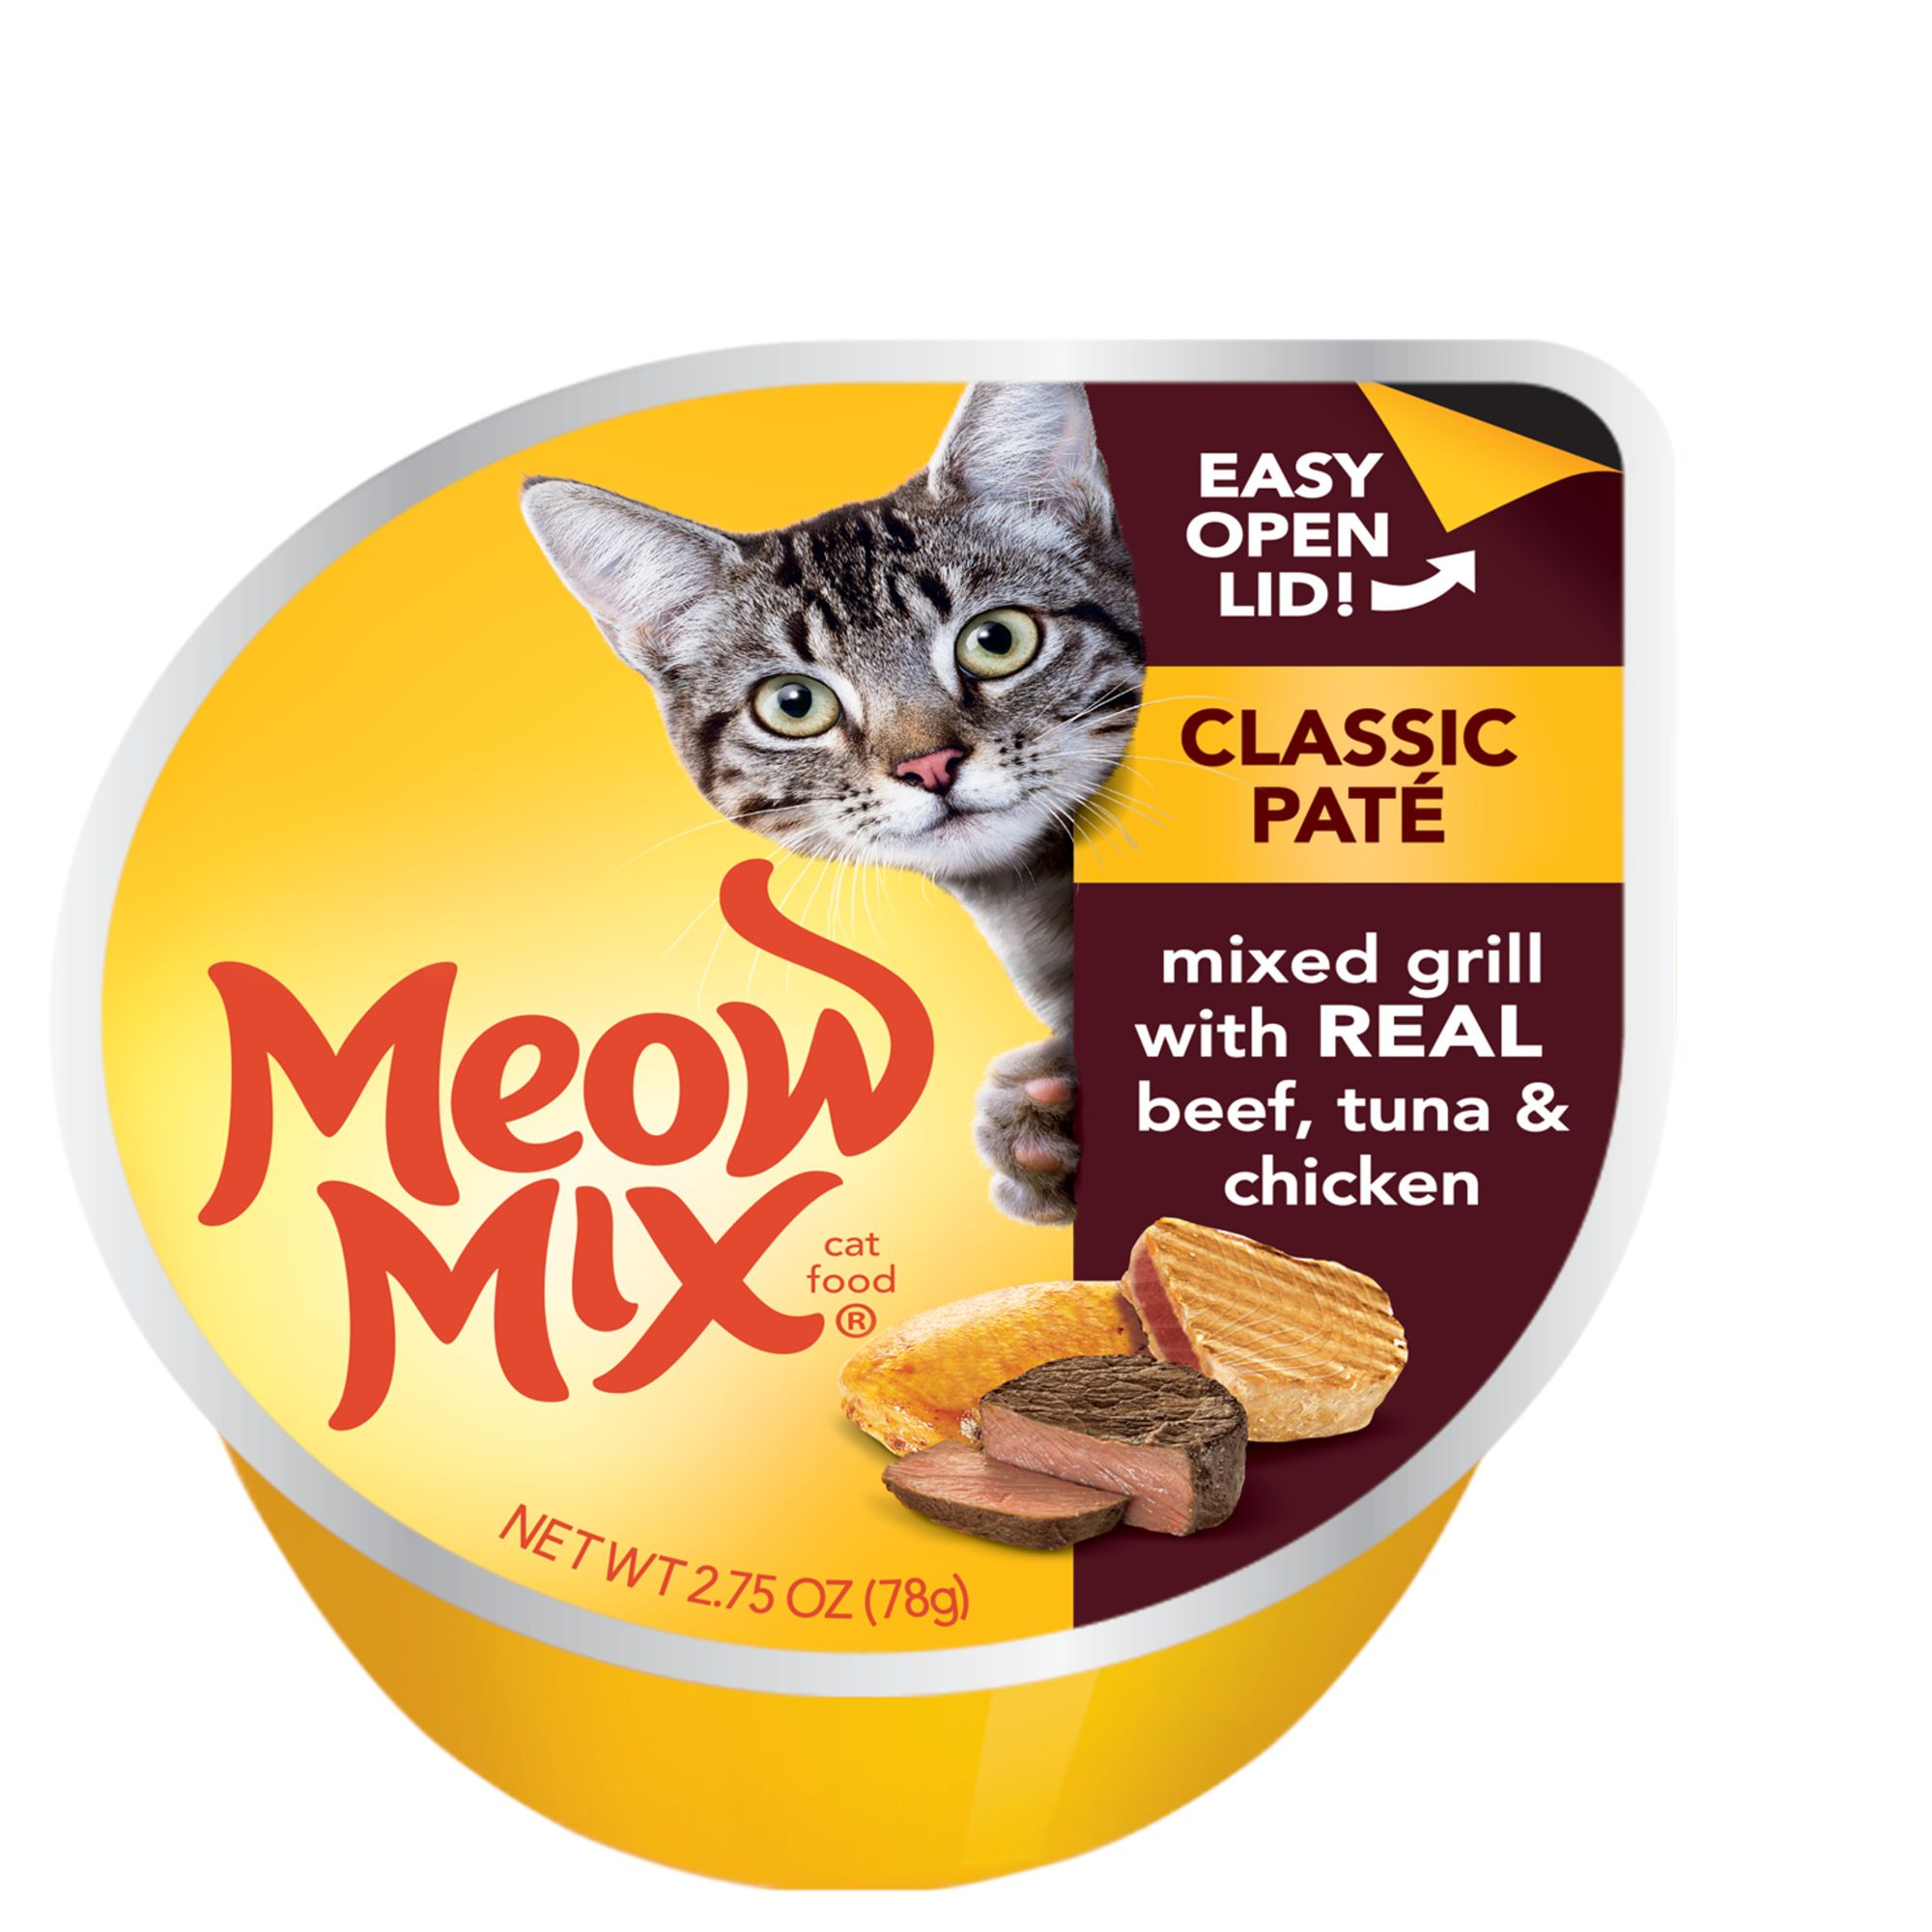 Meow Mix Classic Pate Cat Food Mixed Grill Size 2.75 Oz